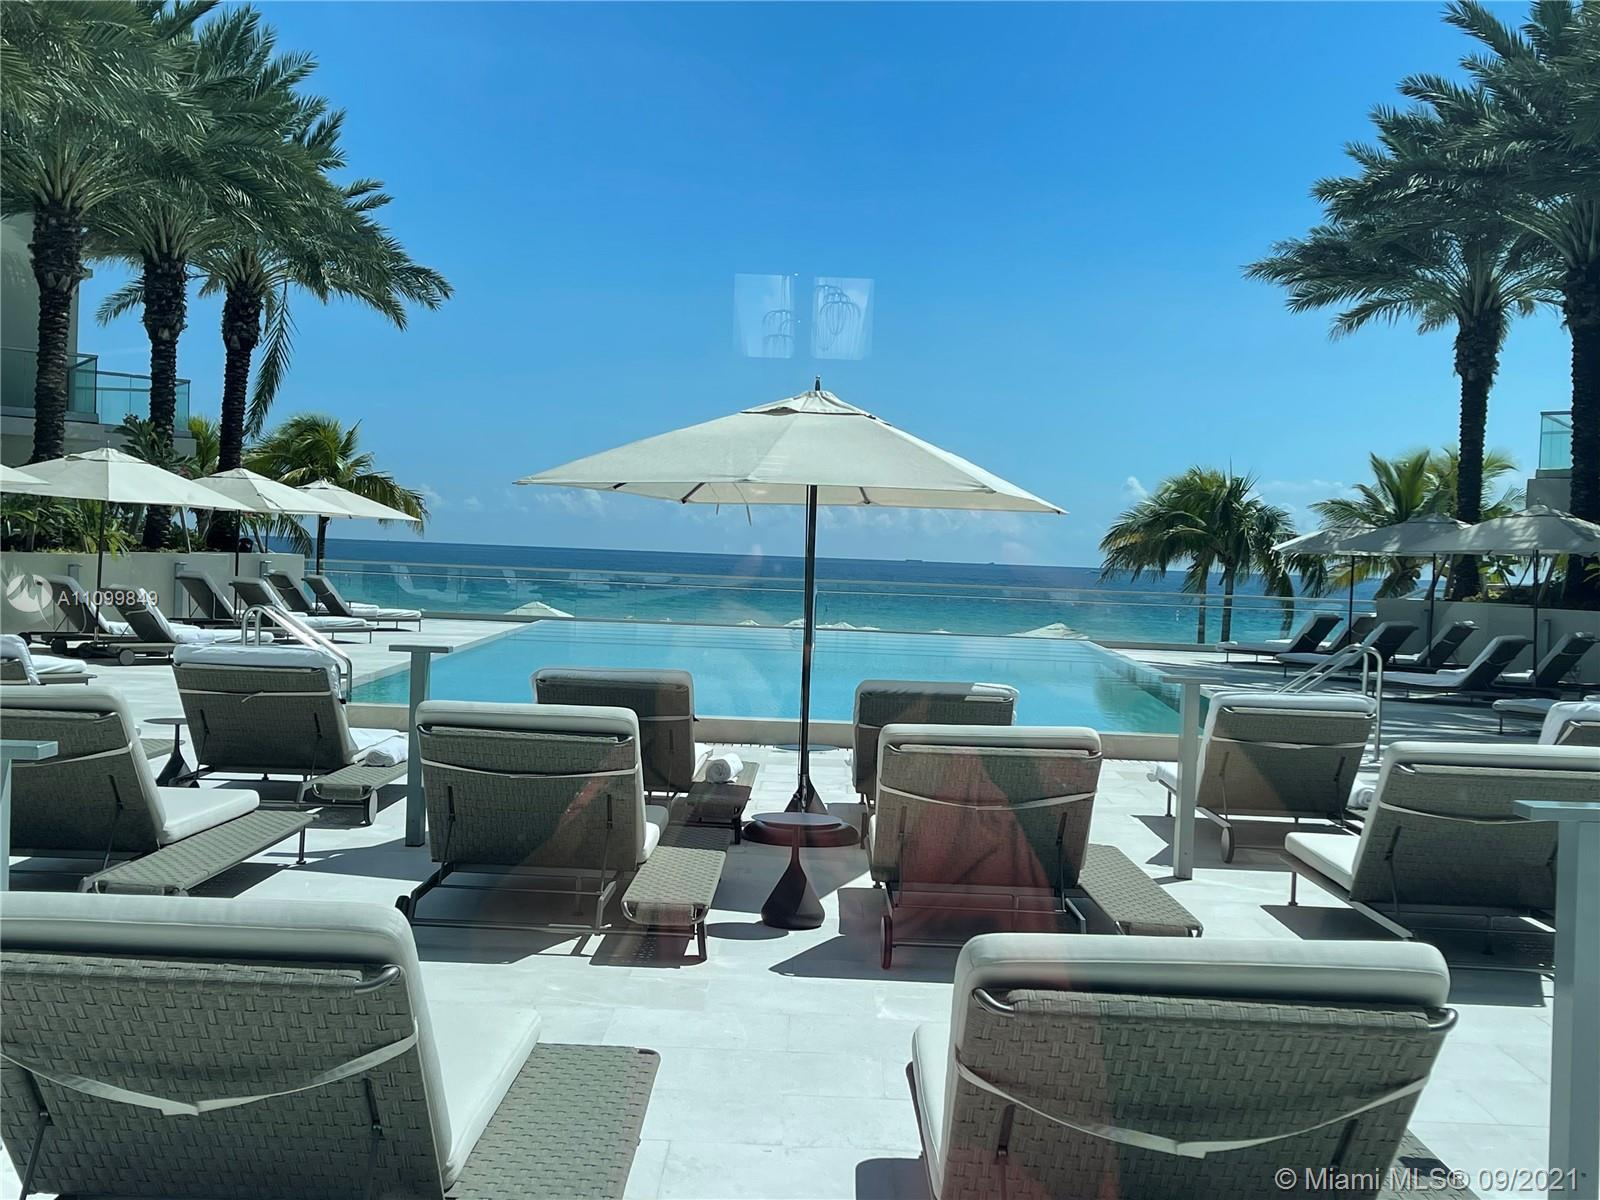 Don't miss this opportunity to live in the most prestigious building on the ocean in Sunny Isles. Of